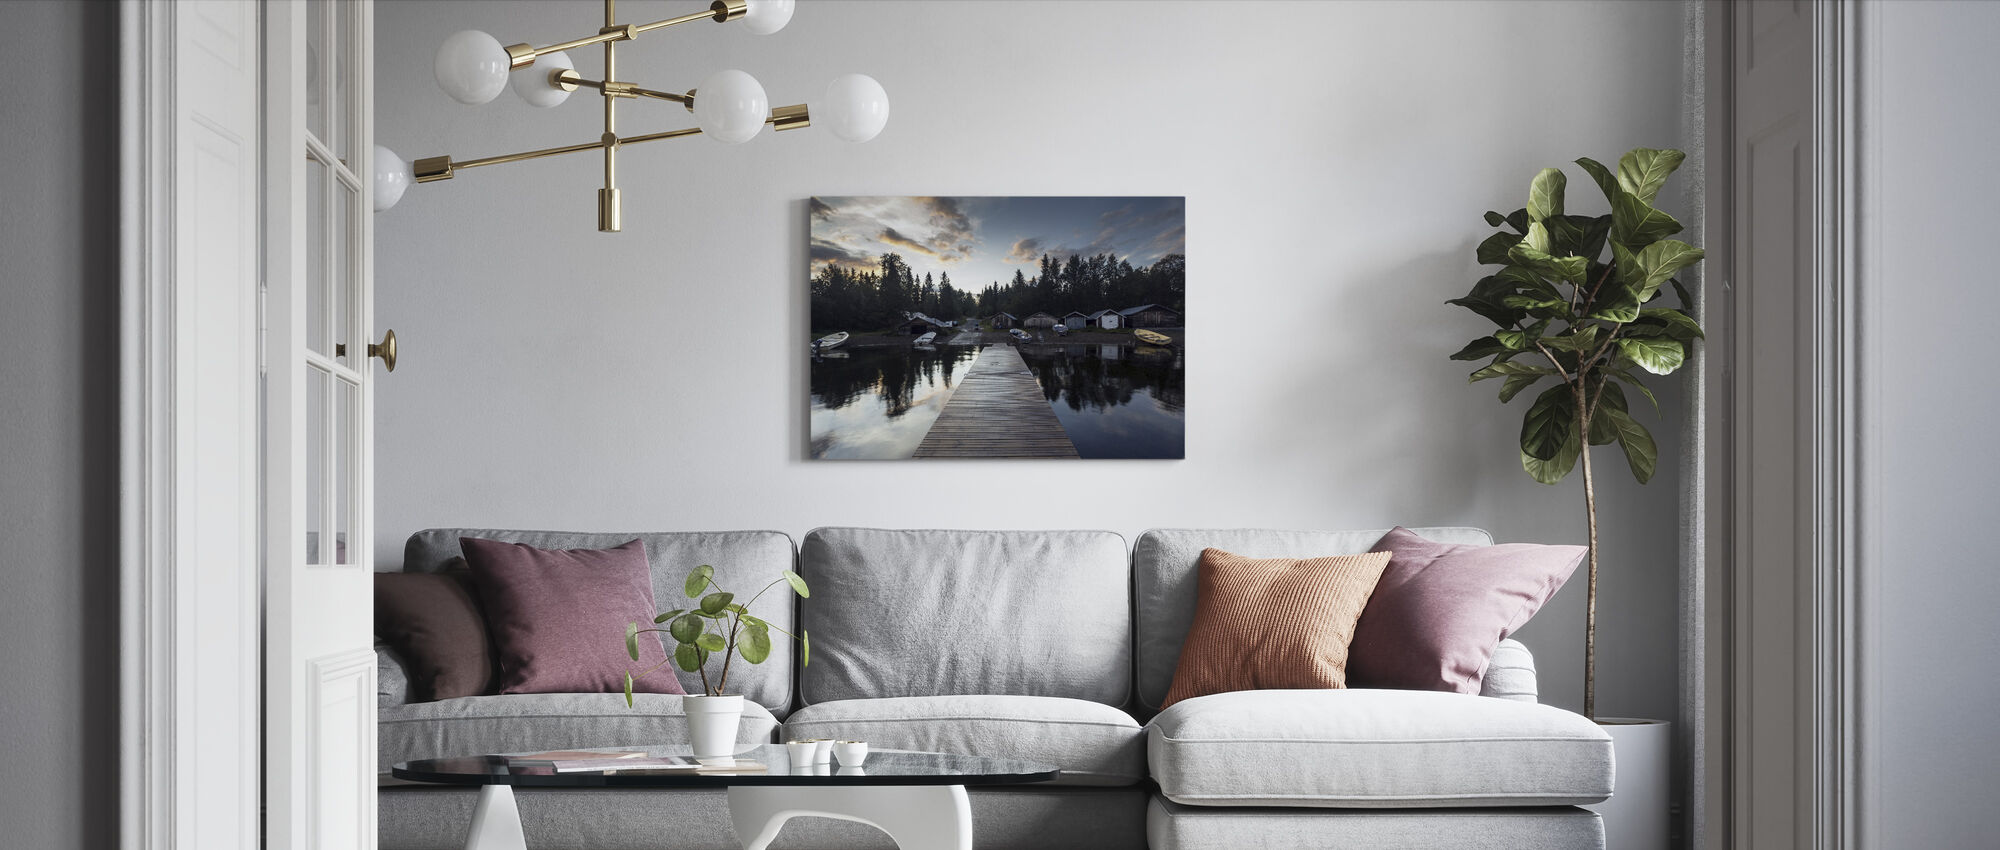 Cabin and Boats - Canvas print - Living Room